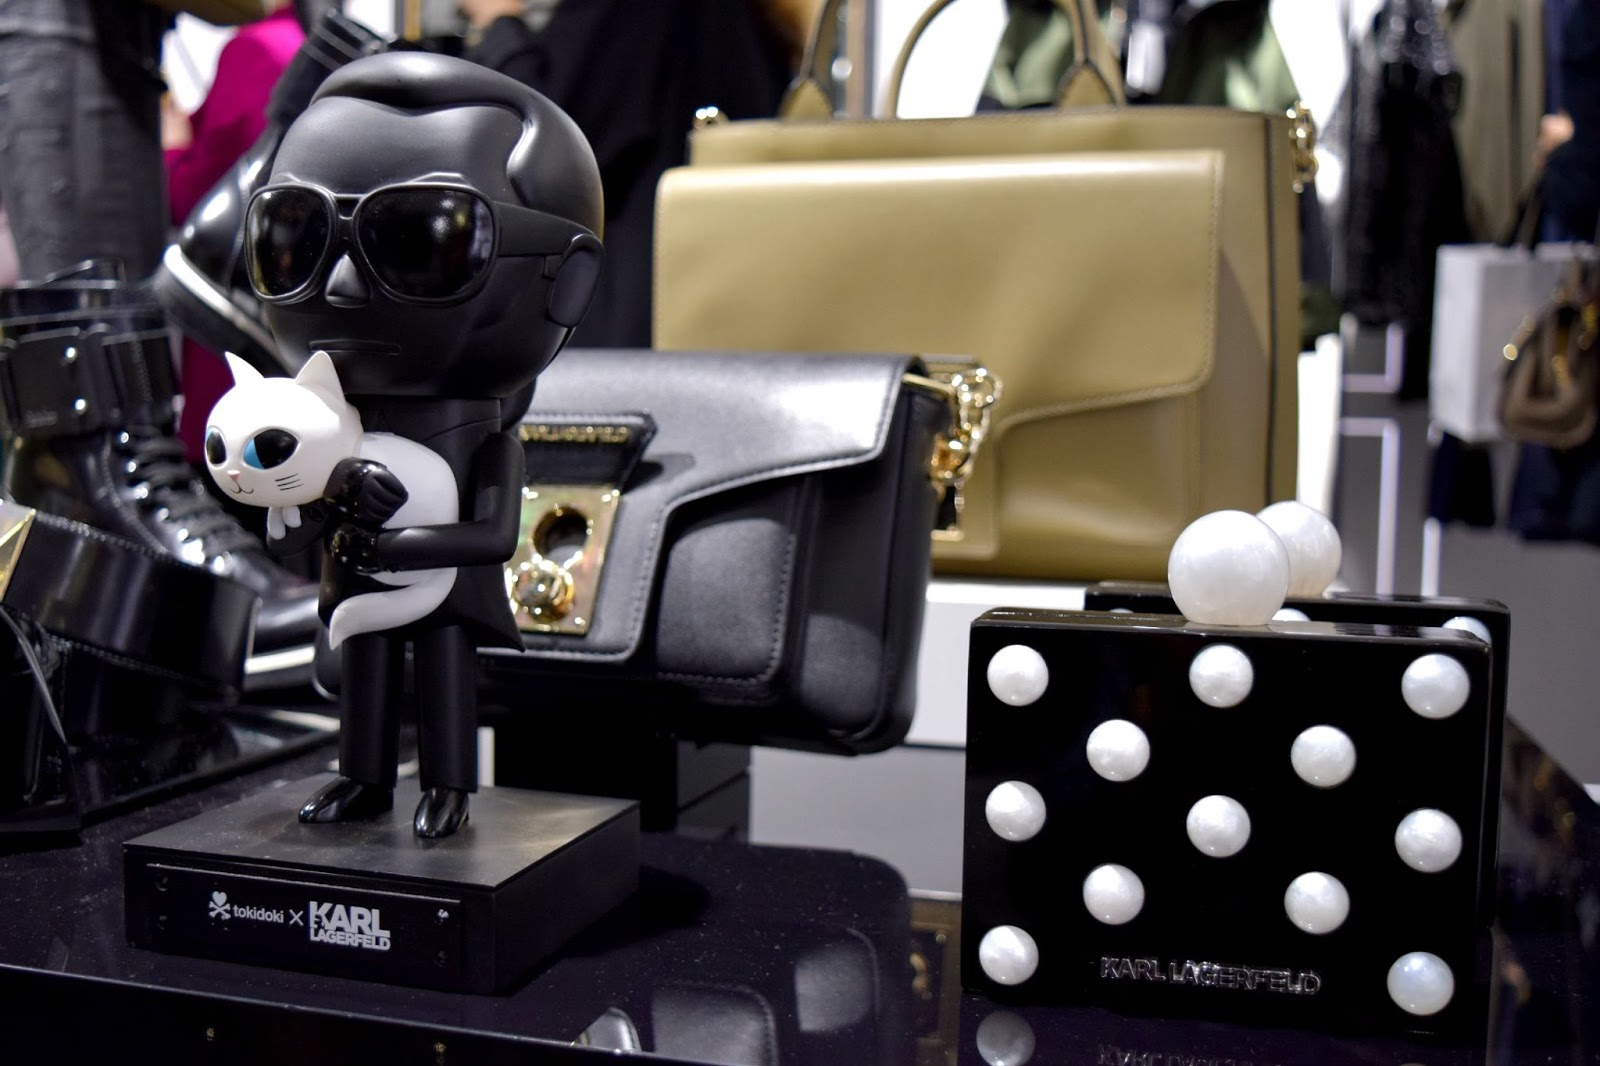 Karl Lagerfeld AW 15 Collection